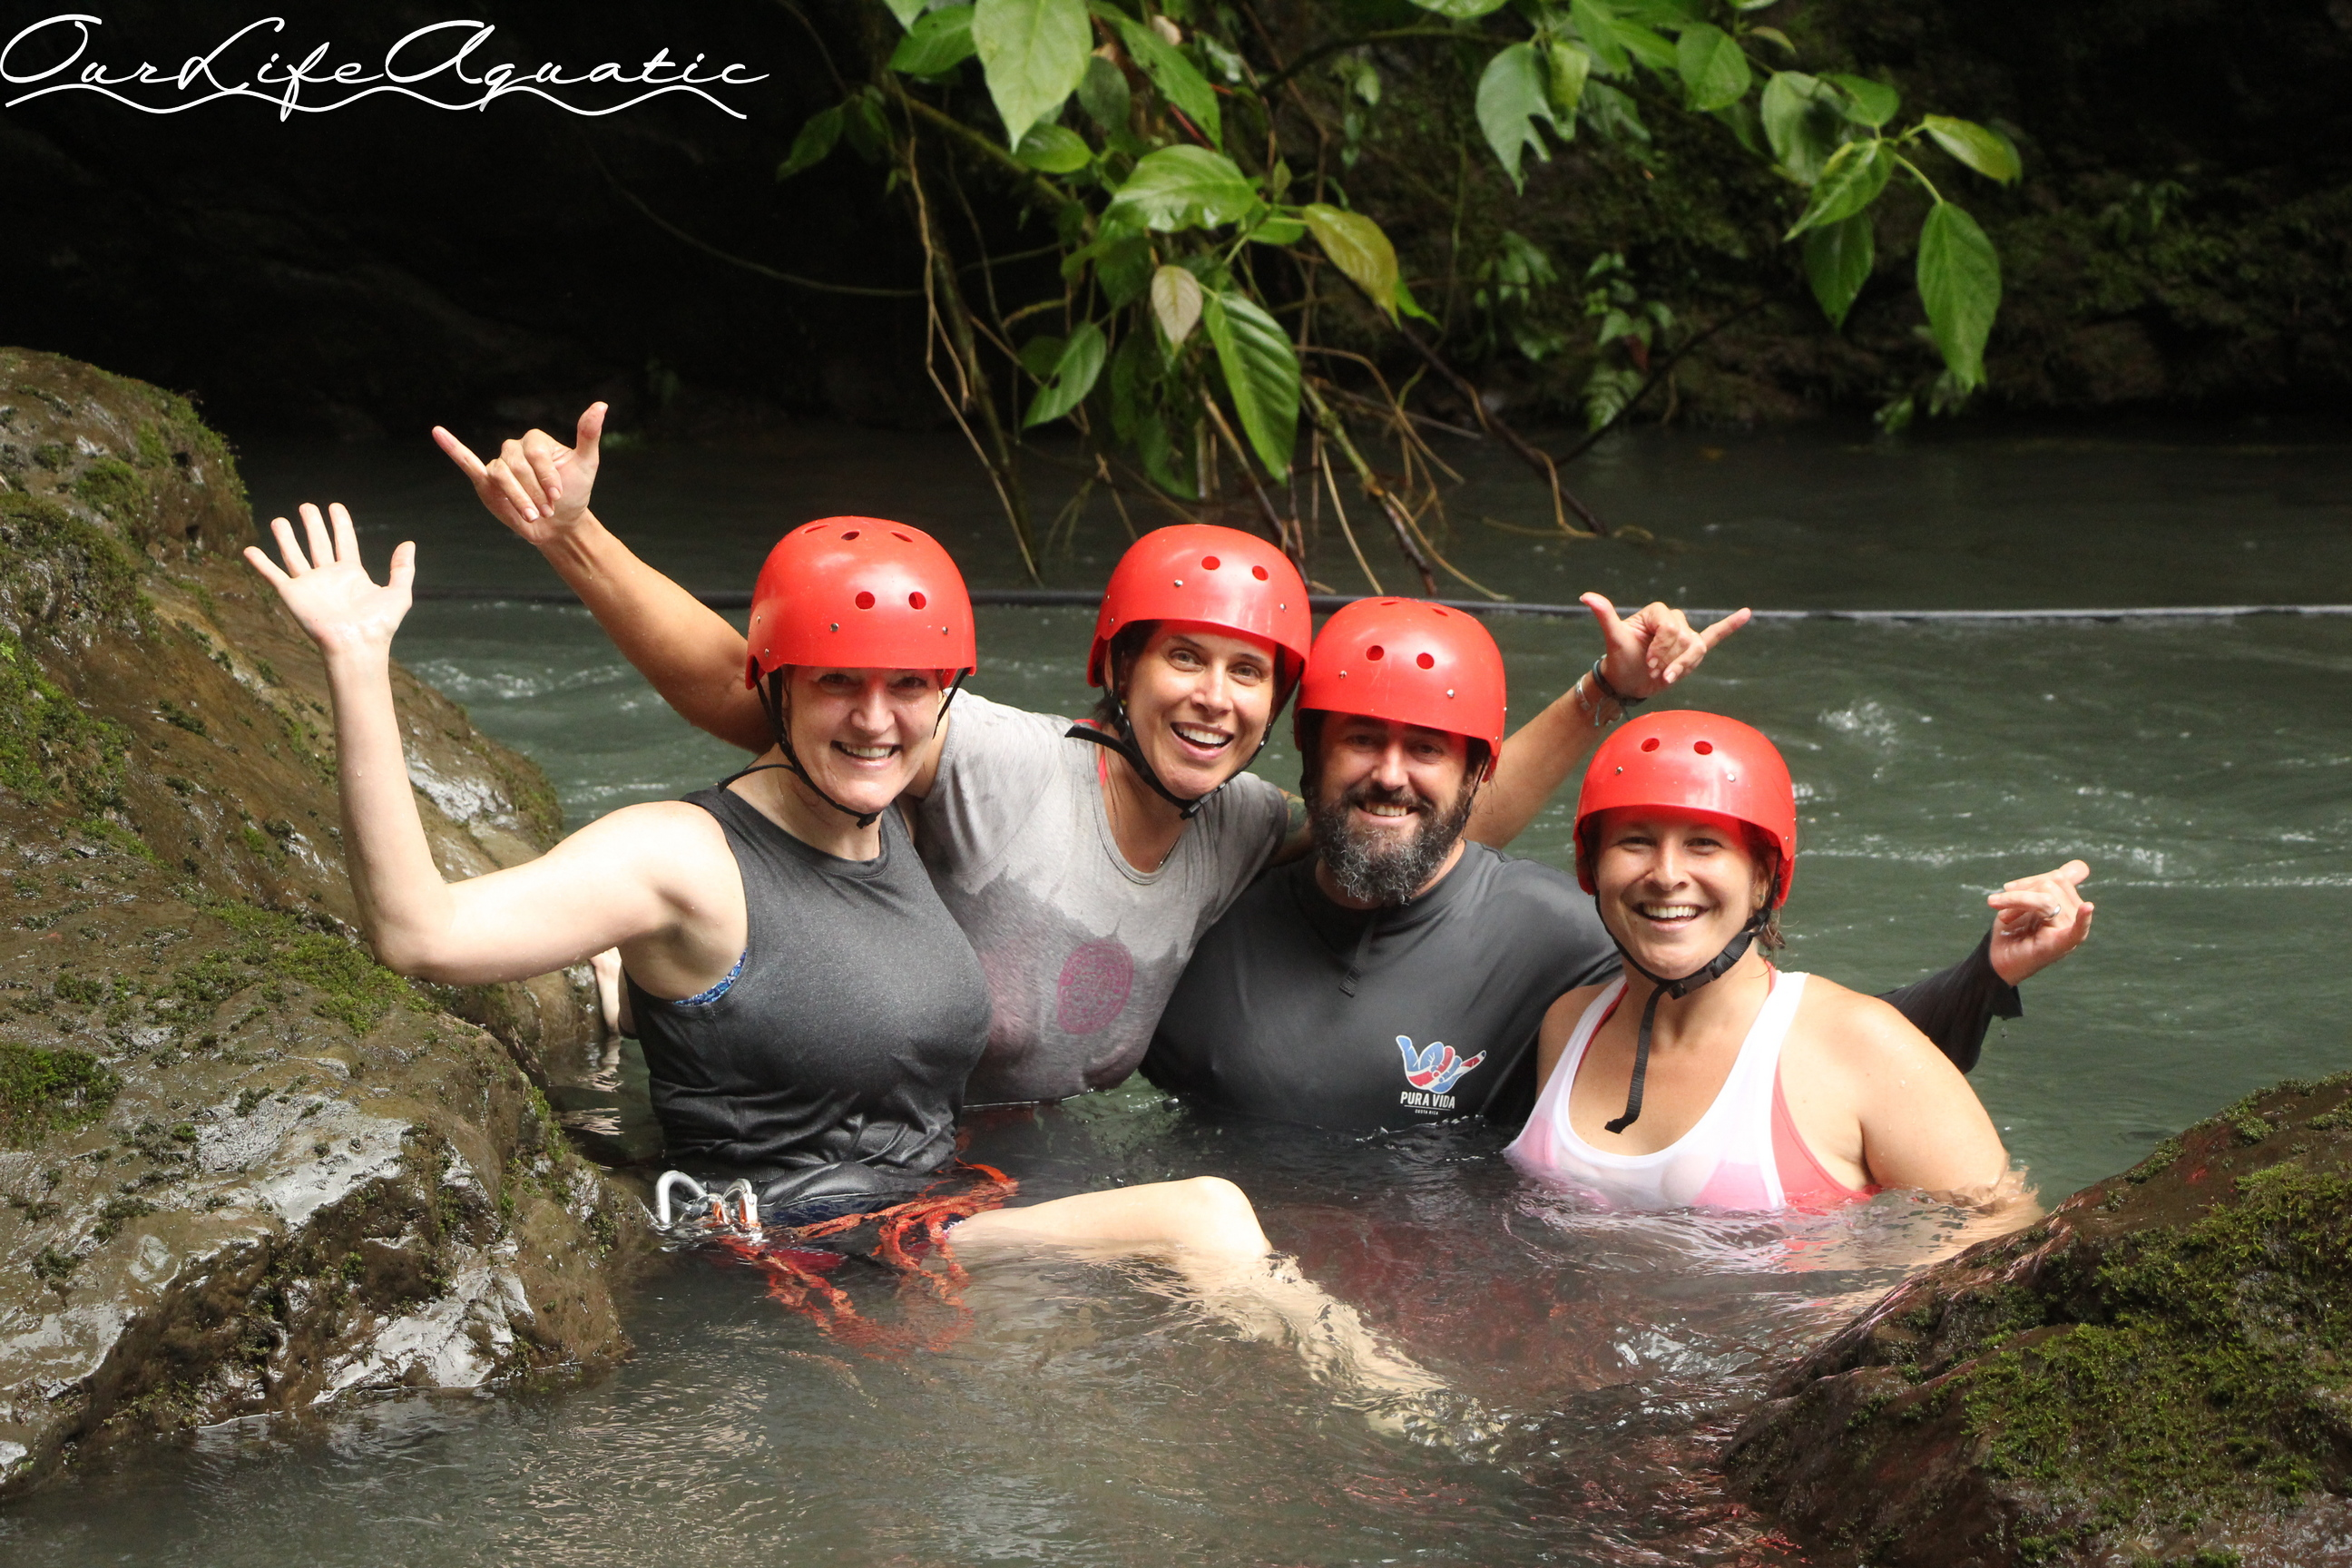 Cooling off after an adrenaline-filled day with Amigos Del Rio adventure tours (amigosdelrio.net)